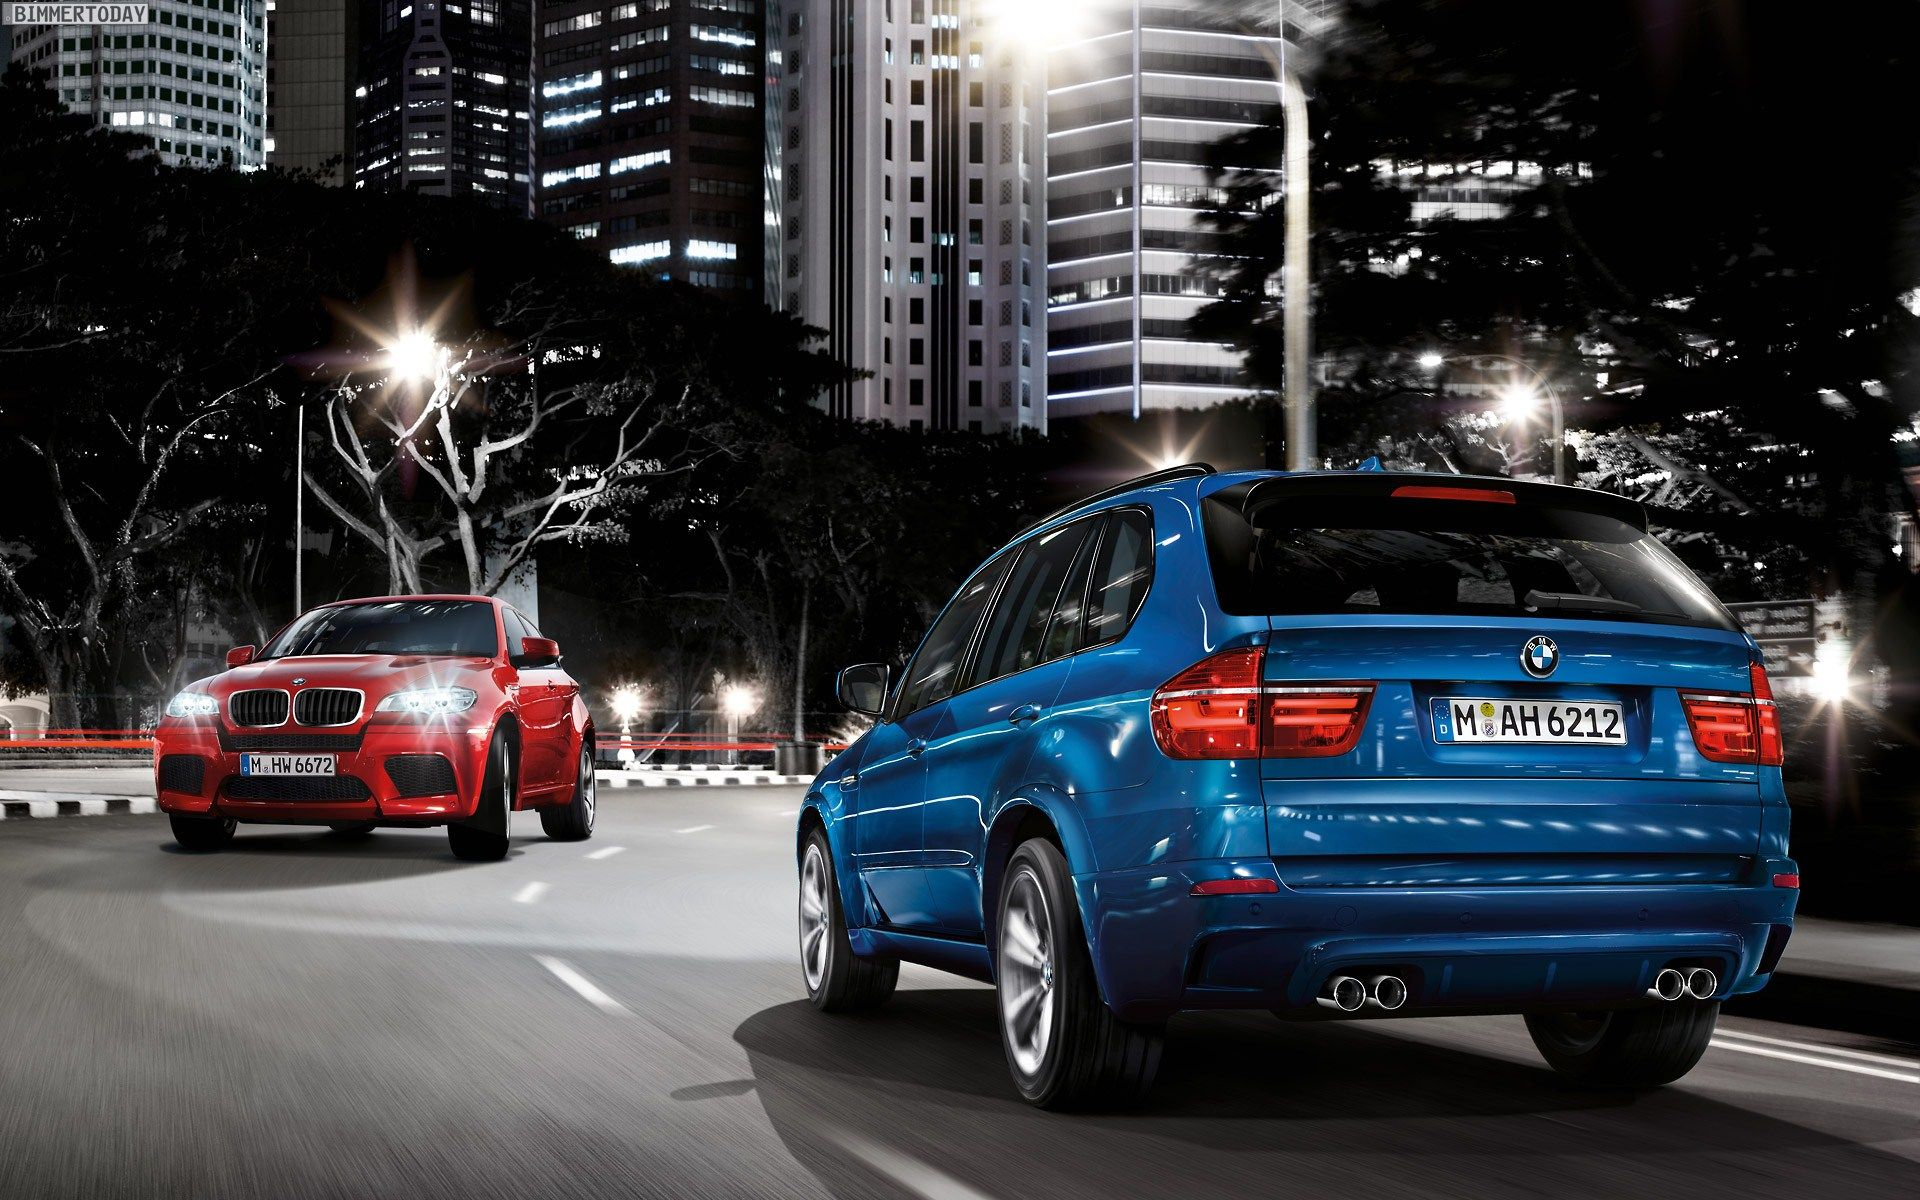 Bmw x5 wallpaper 2013 cars pinterest bmw x5 bmw and hd wallpaper bmw x5 wallpaper 2013 voltagebd Image collections